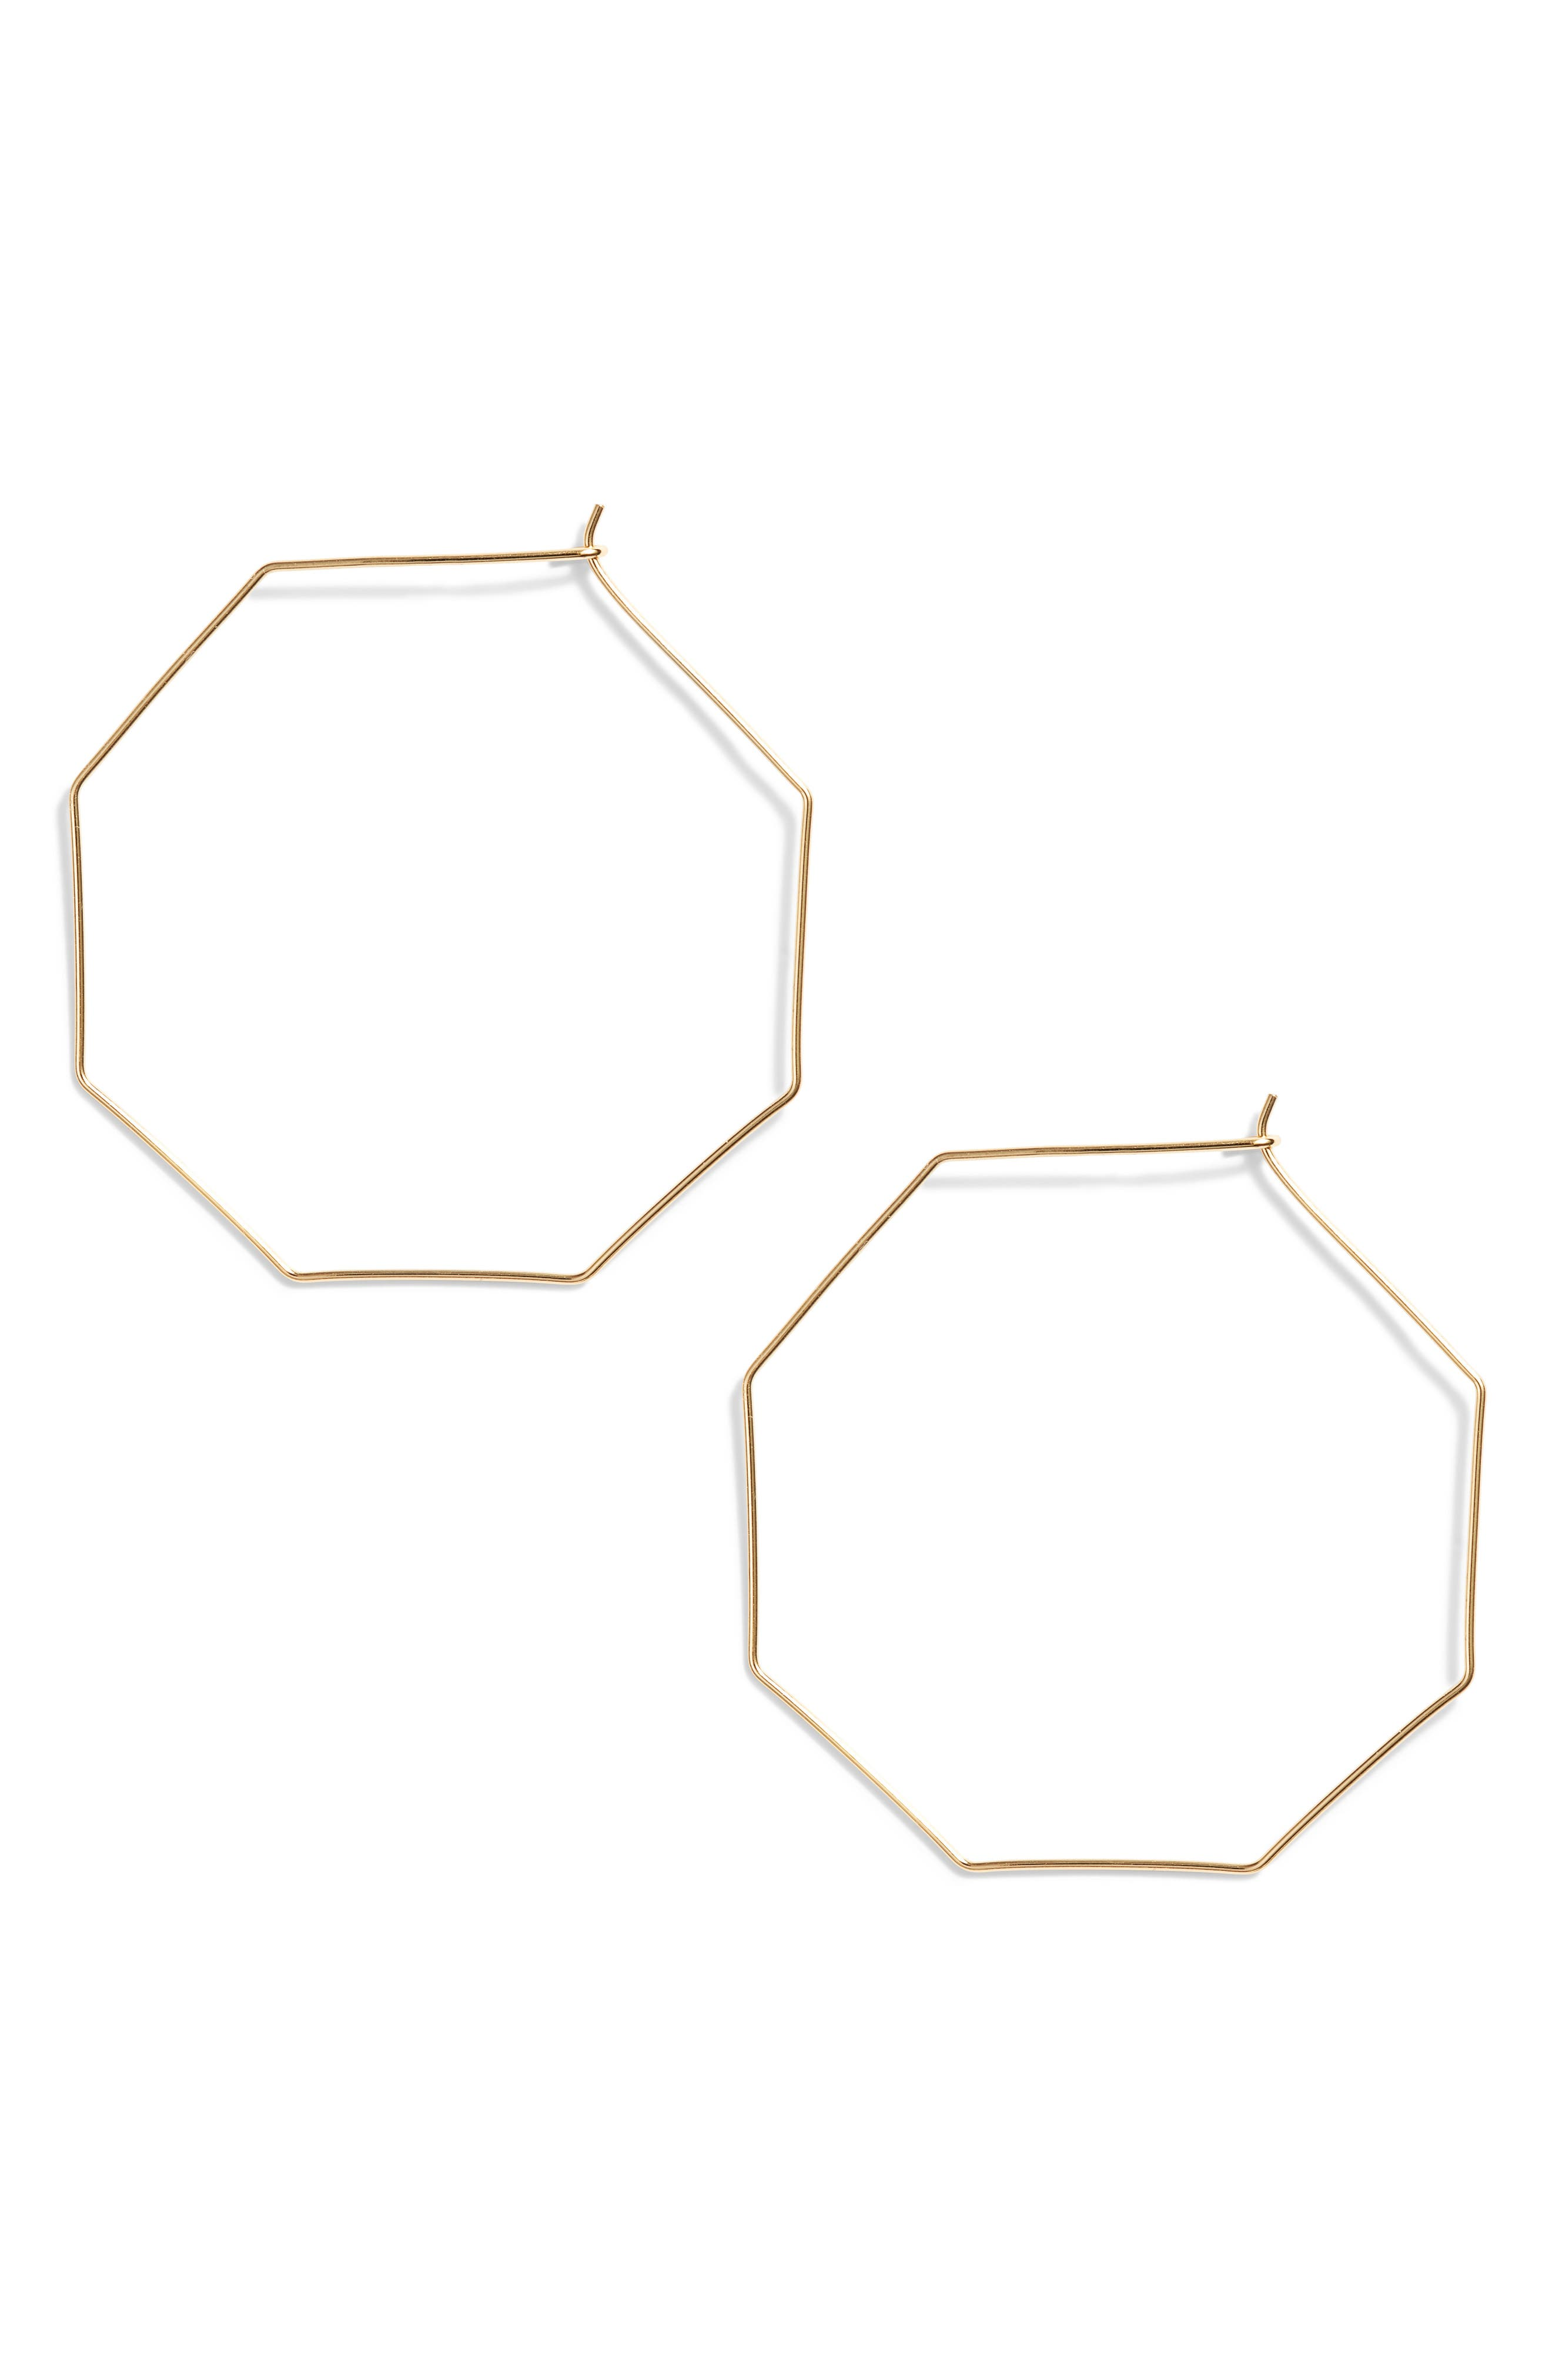 Octagon Hoop Earrings,                             Main thumbnail 1, color,                             GOLD